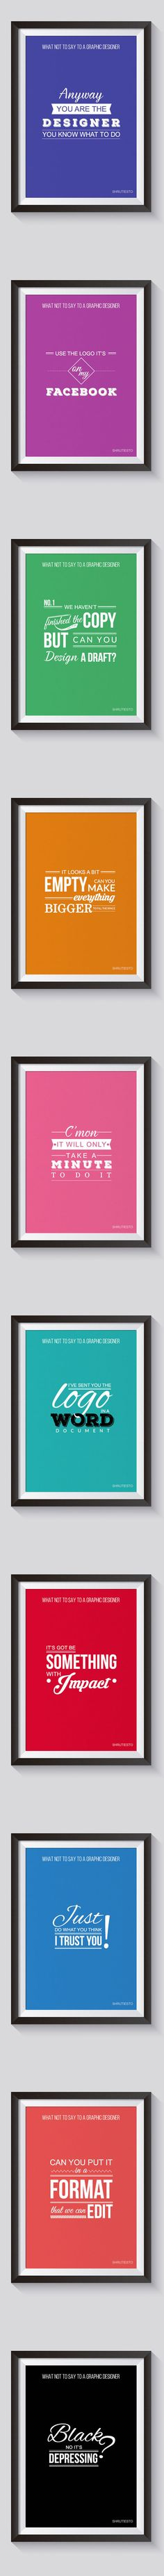 10 Things Not To Say To A Graphic Designer (By Shruti Gupta) - 9GAG